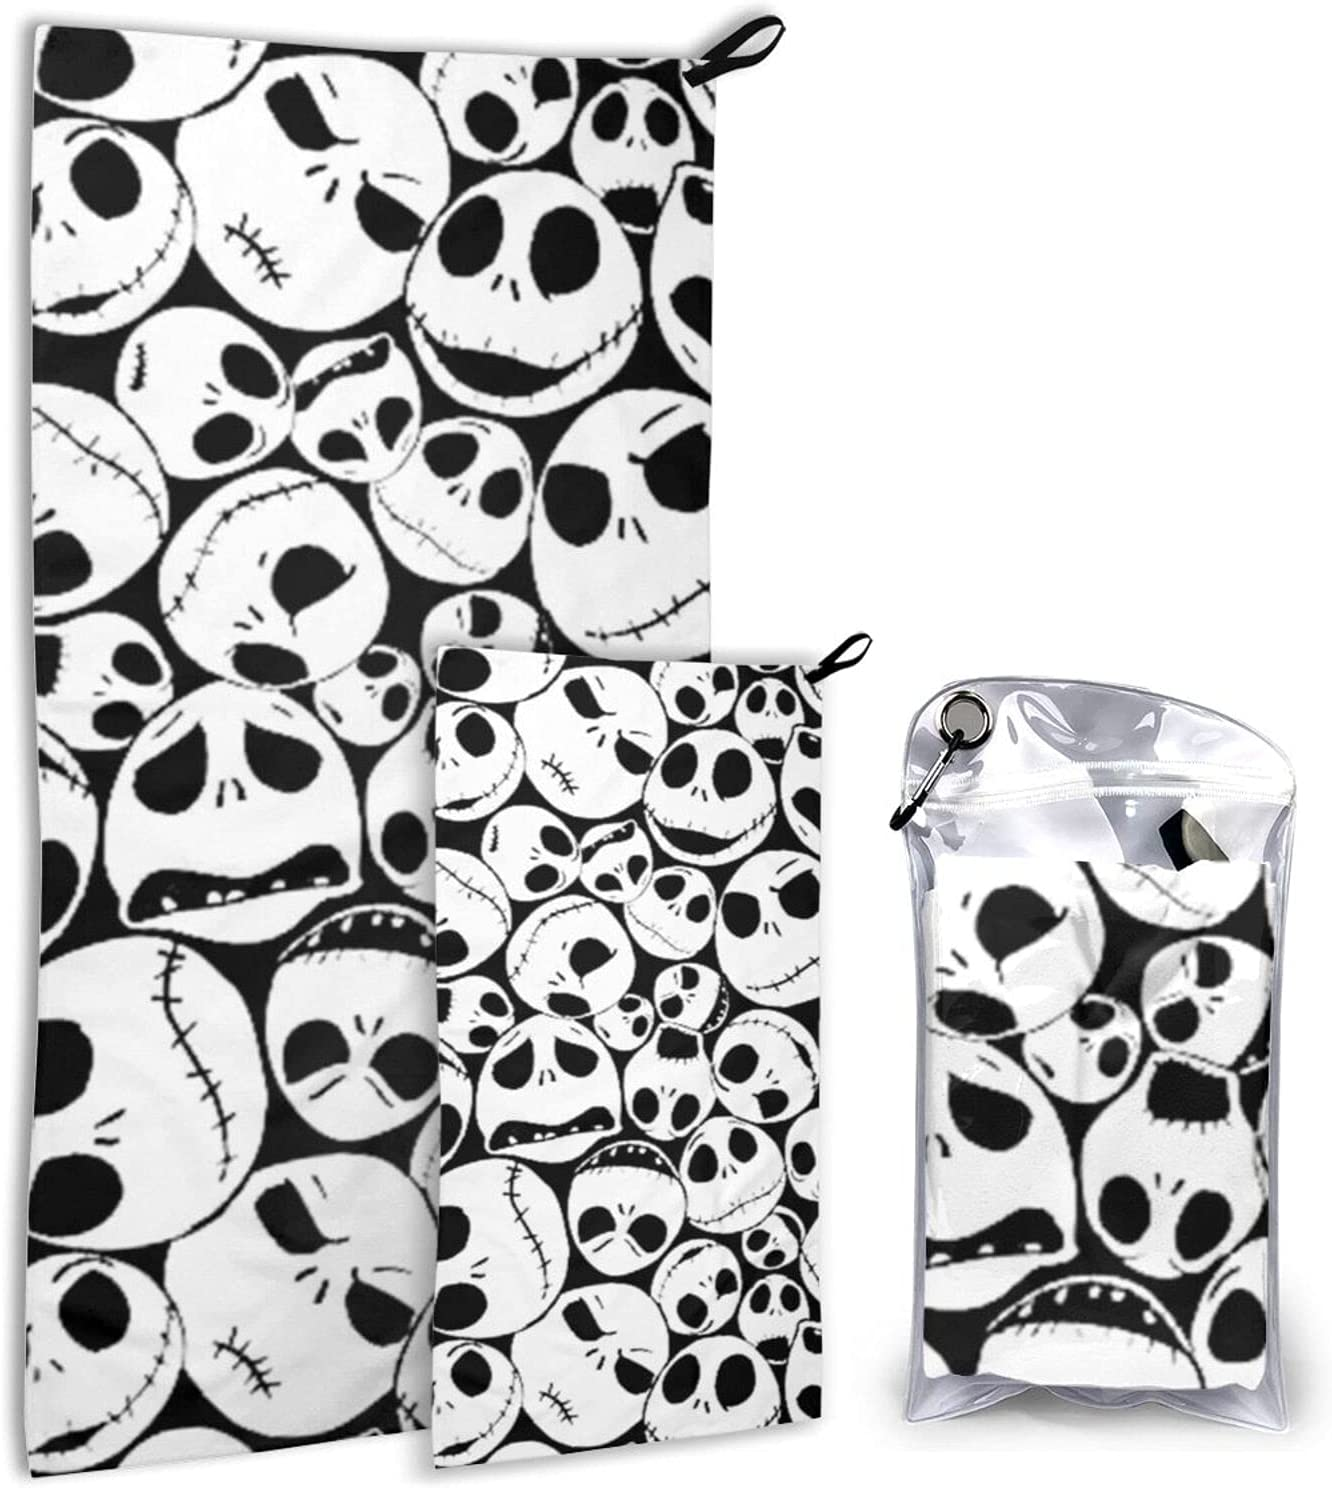 Black Christmas Skull Microfiber Popular products Towels 2 - Pack At the price Dry Cam Quick